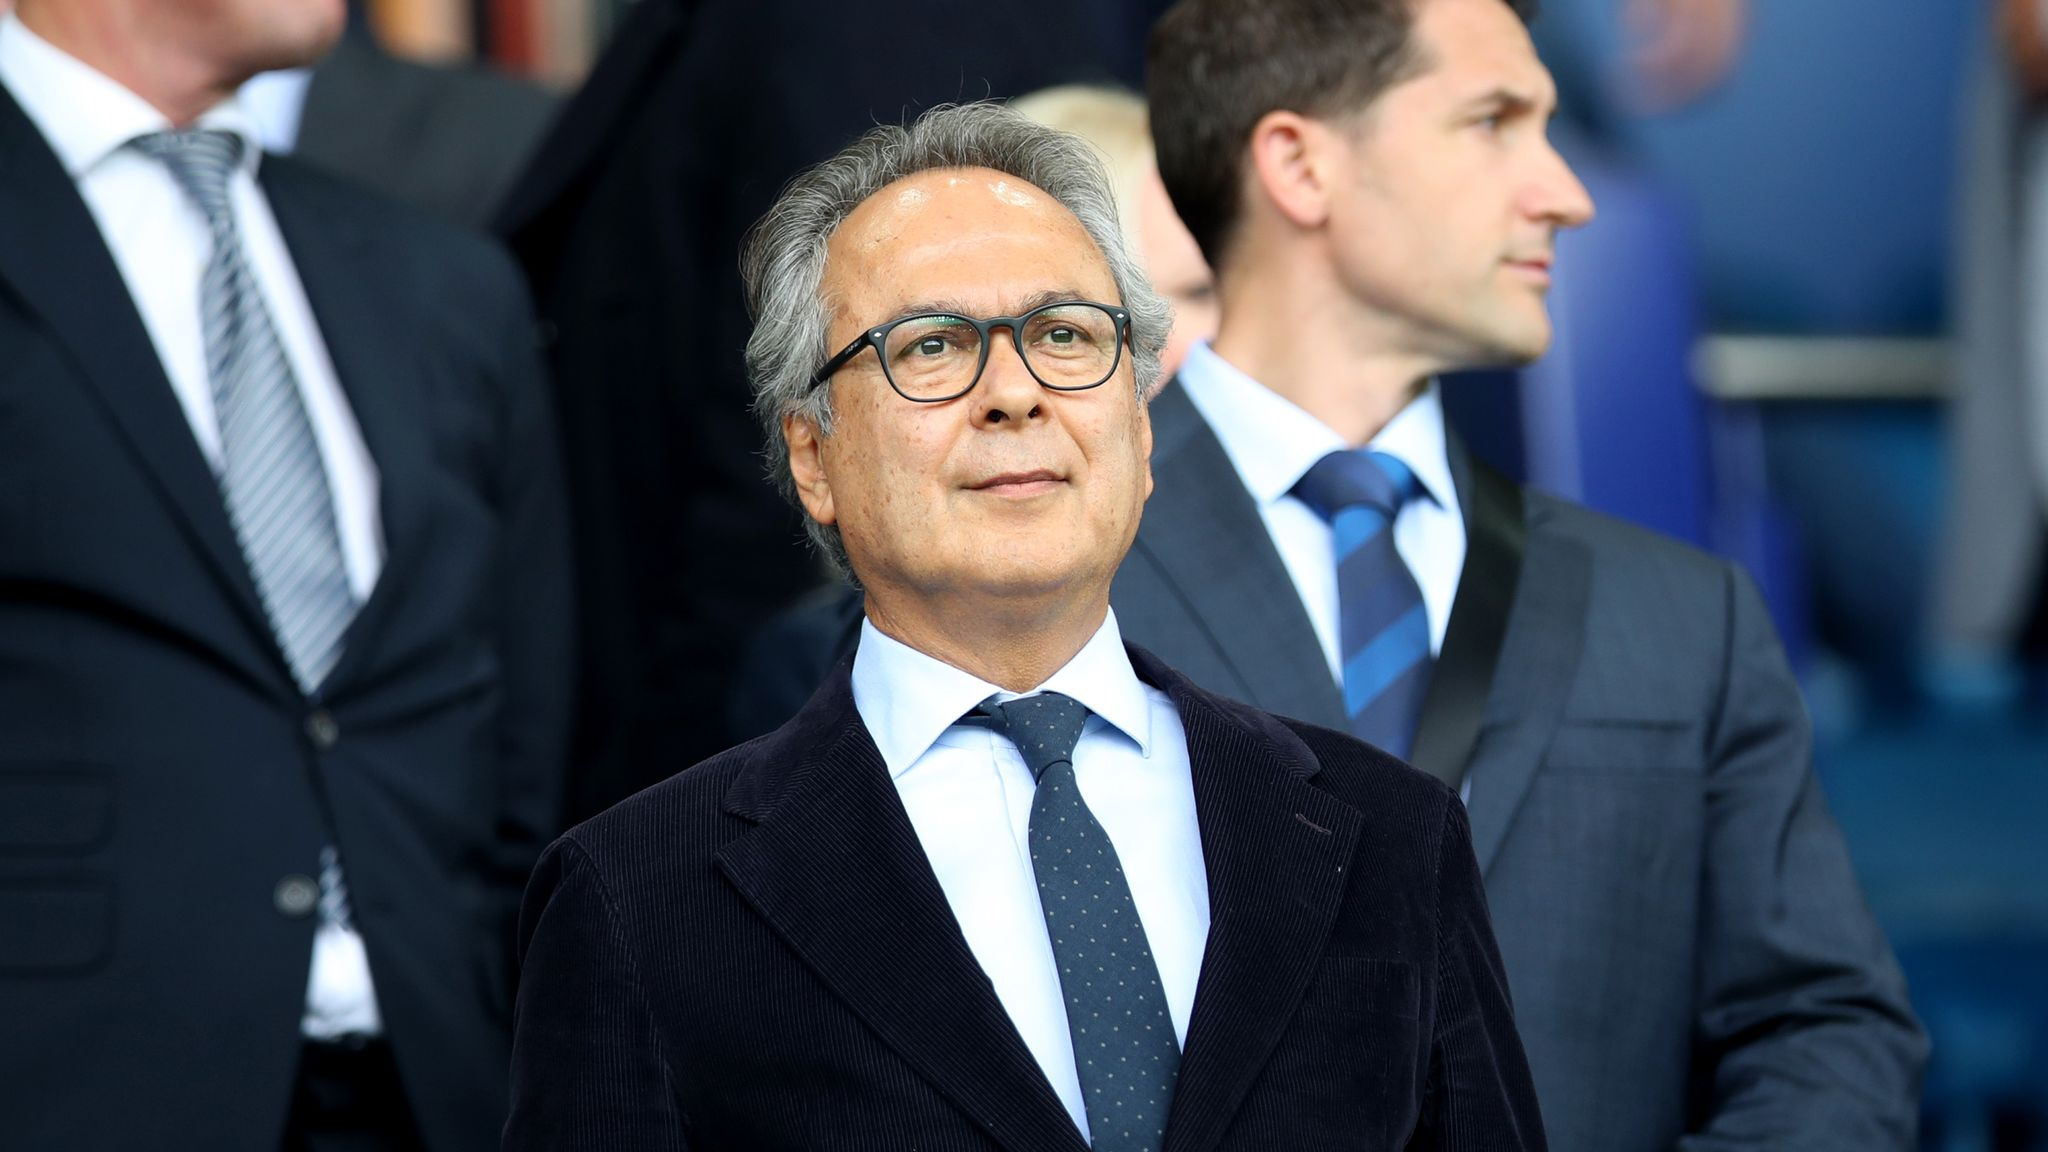 Farhad Moshiri Increases Investment In Everton By £250m